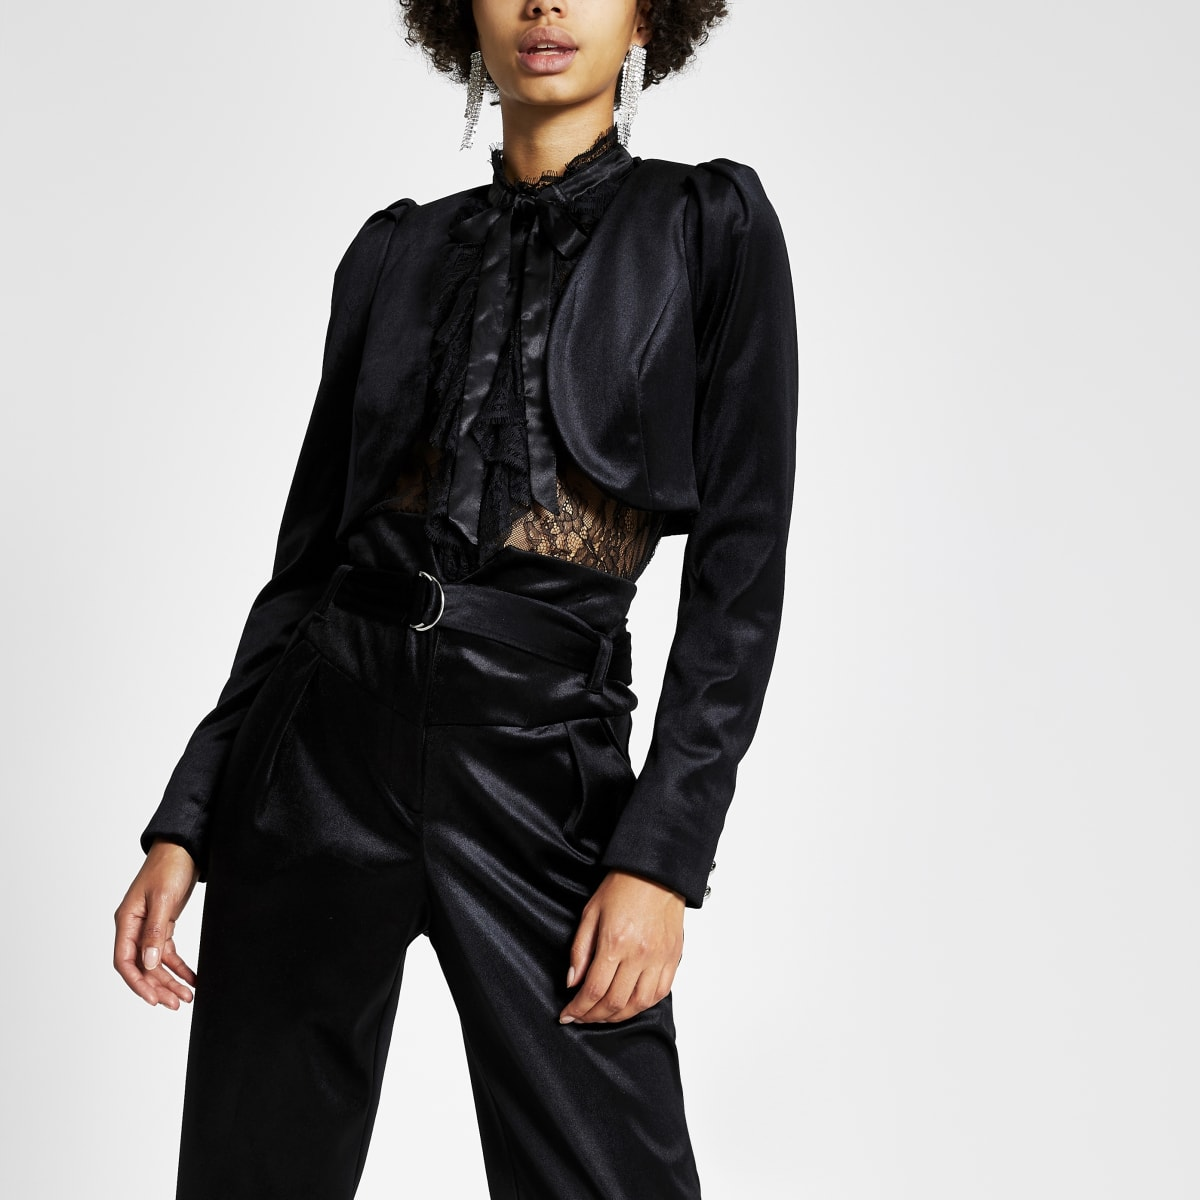 Black velvet cropped long sleeve jacket